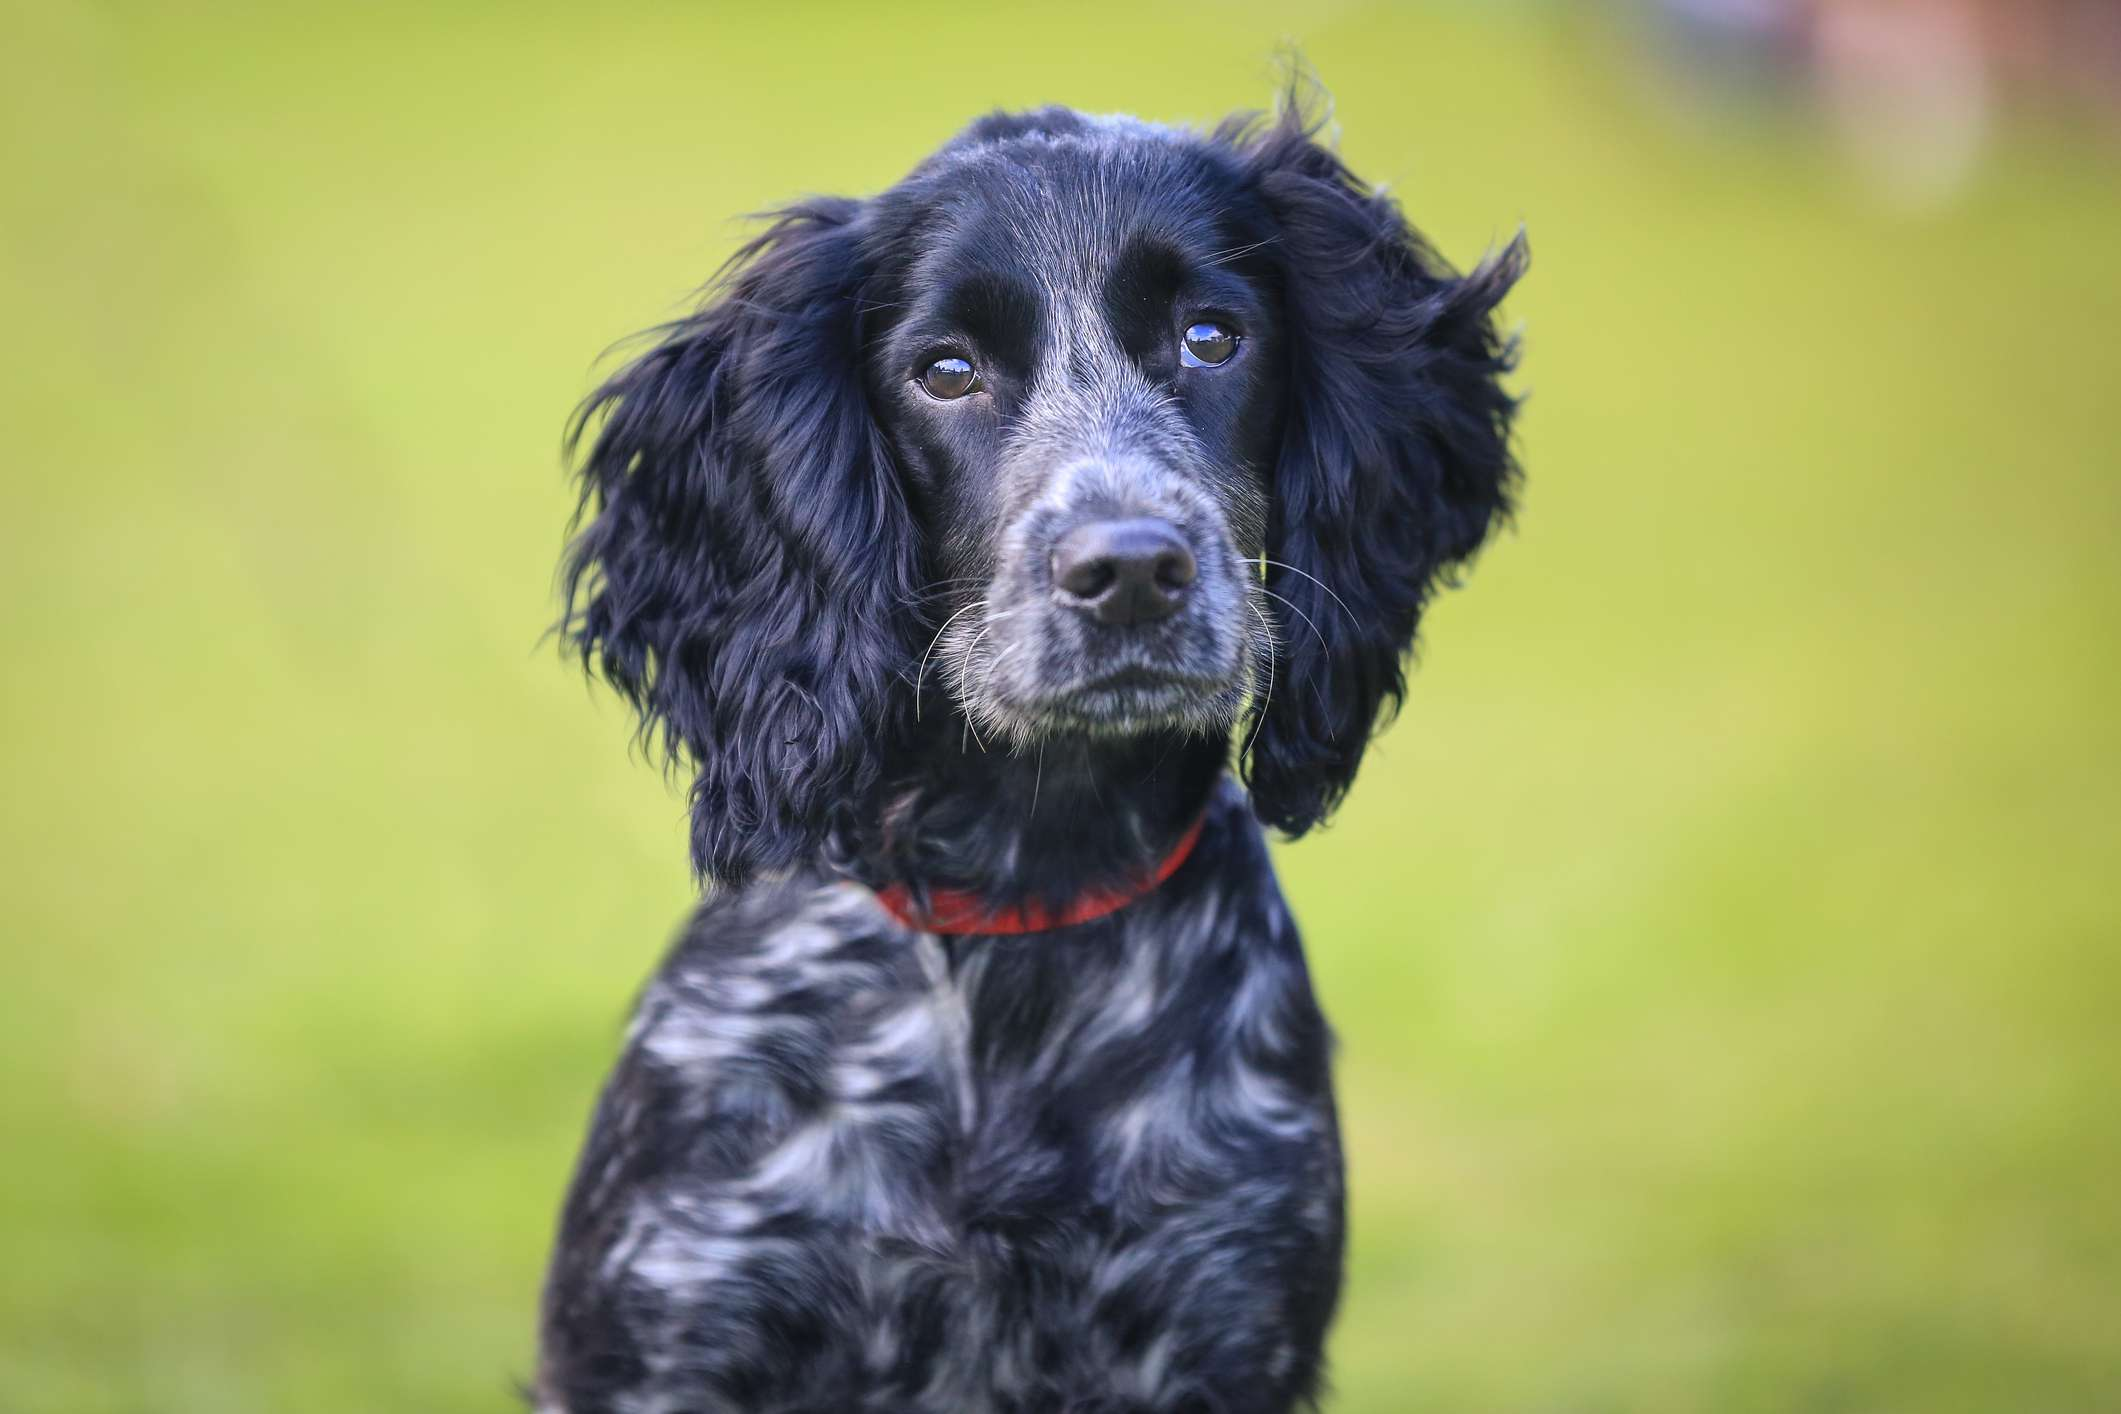 Black and white ticked English cocker spaniel against green background